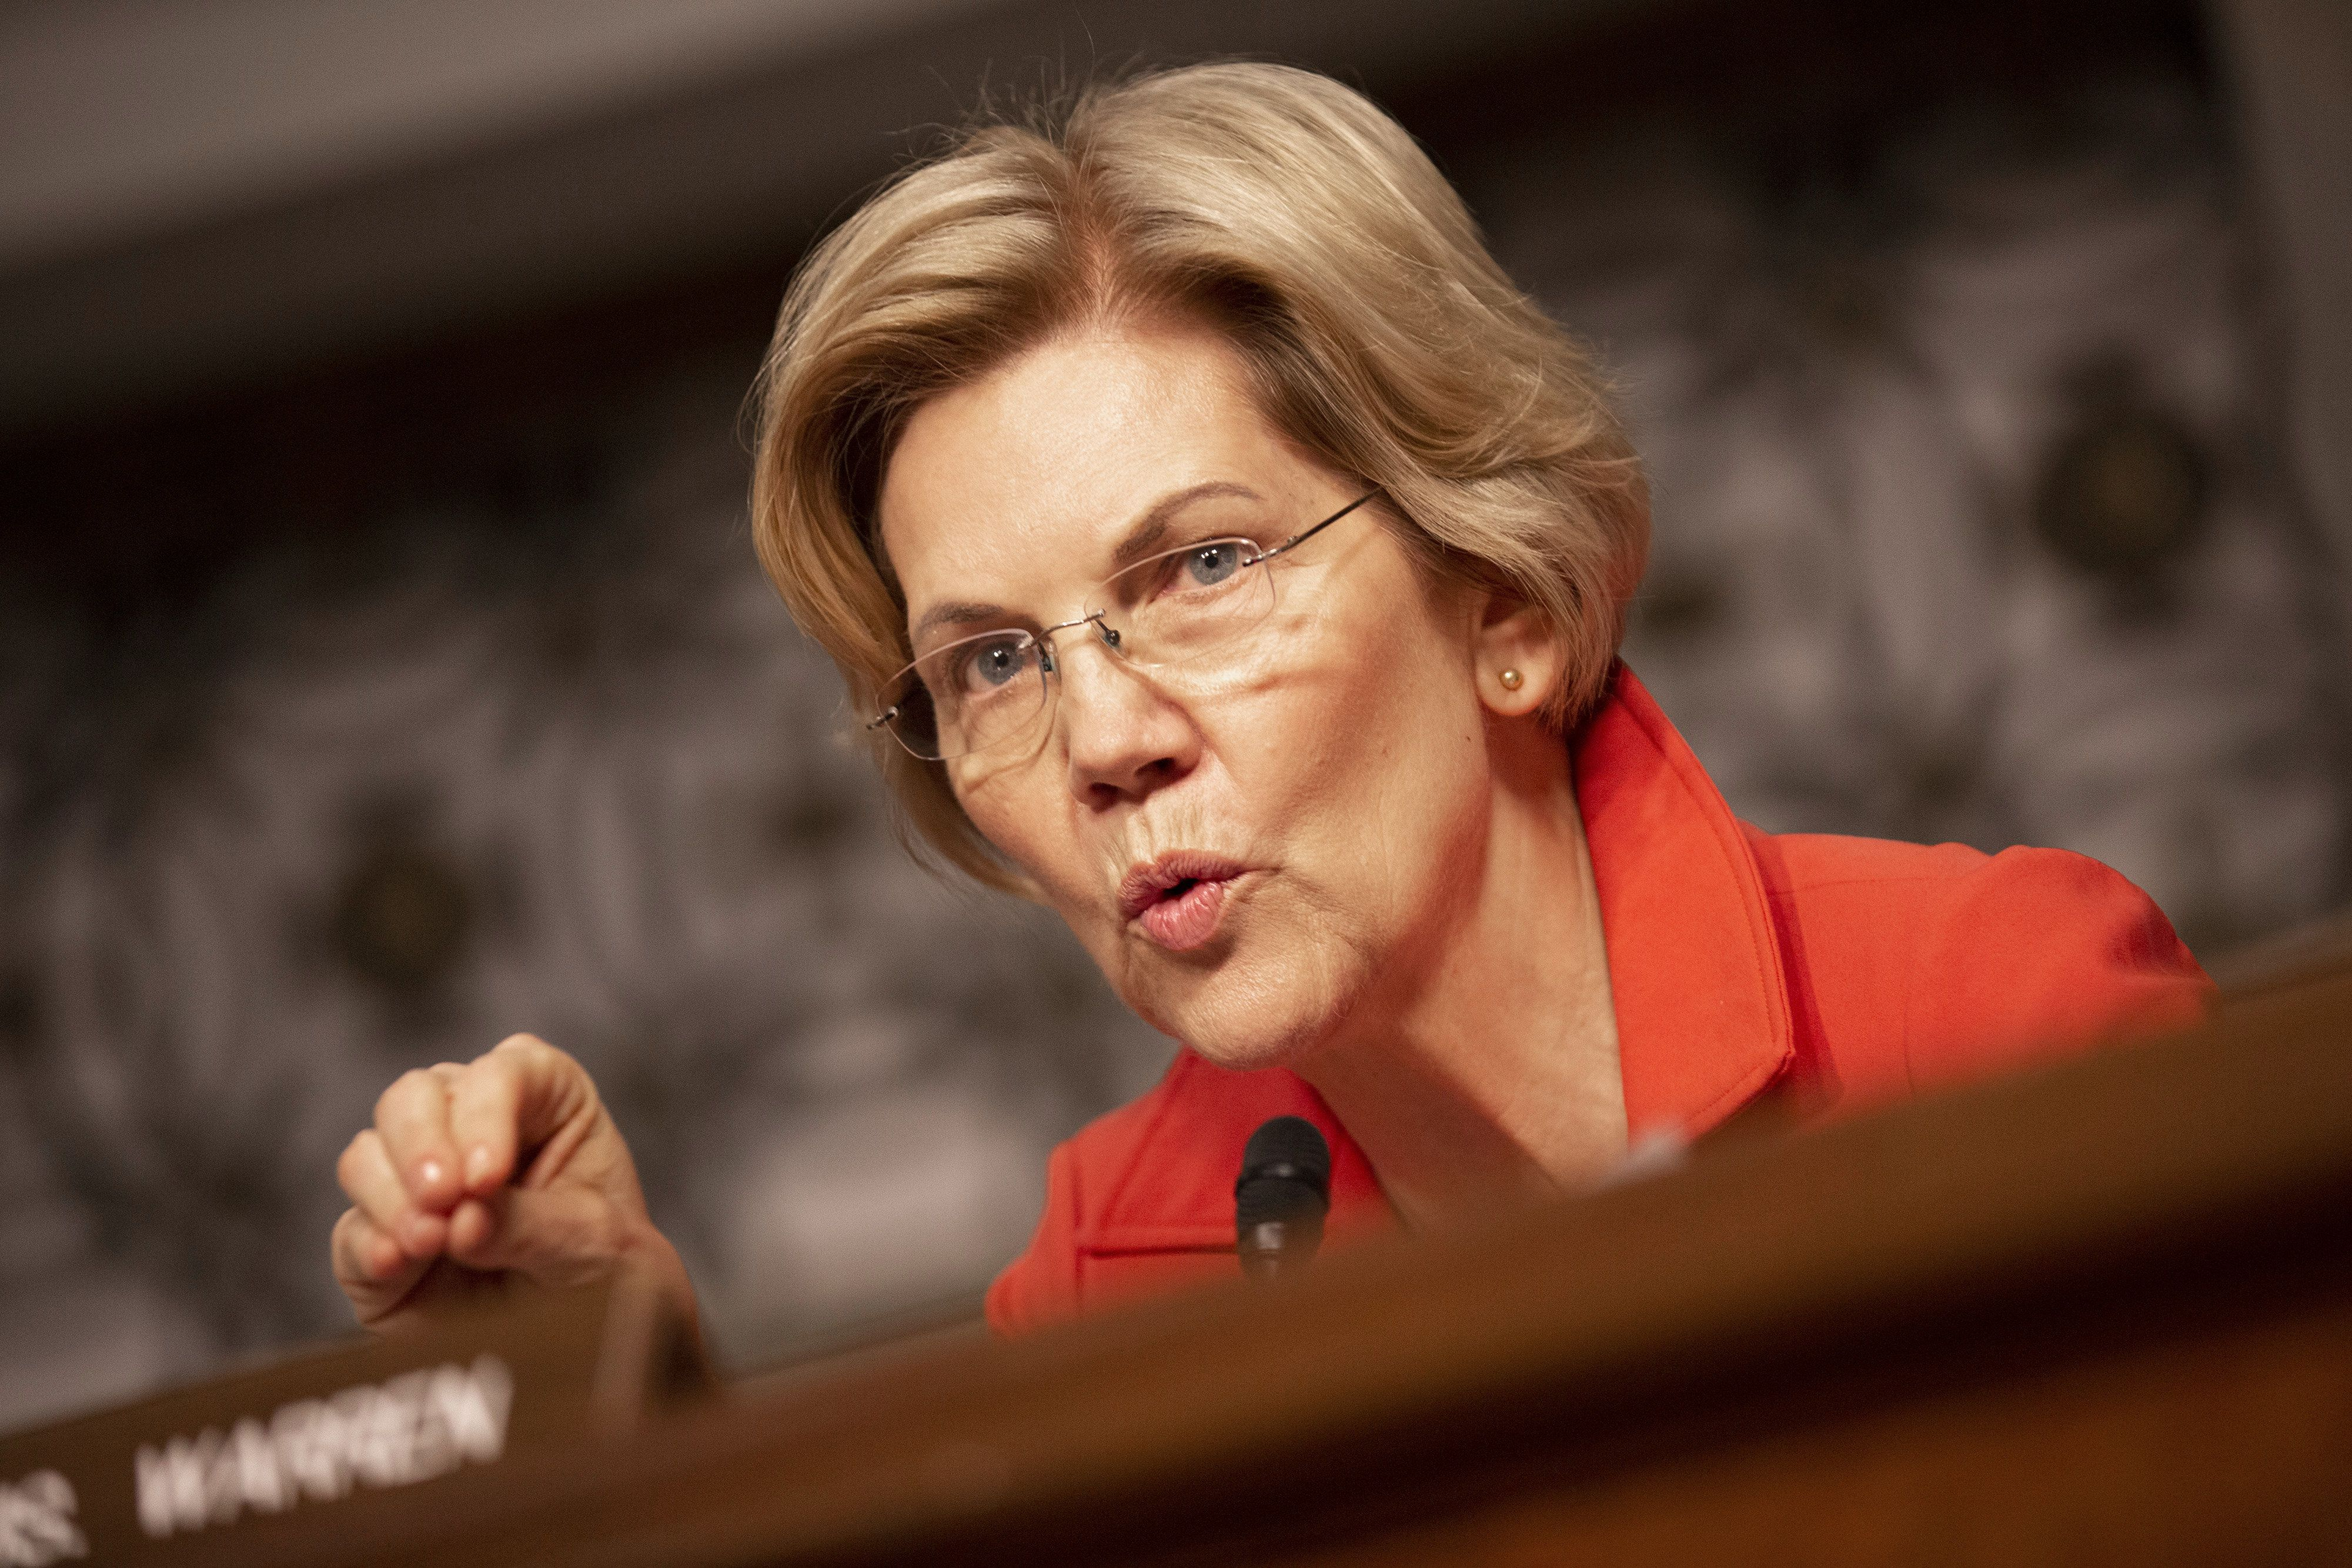 Senator Elizabeth Warren, a Democrat from Massachusetts, speaks during a Senate Armed Services Committee hearing in Washington, D.C., U.S., on Thursday, April 11, 2019. A slew of overlapping White House and Pentagon proposals to reshape U.S. military space operations, development and acquisition 'could present considerable challenges' to the Pentagon's effective functioning in the next war-fighting realm, according to a report from Congress's research arm. Photographer: Stefani Reynolds/Bloomberg via Getty Images